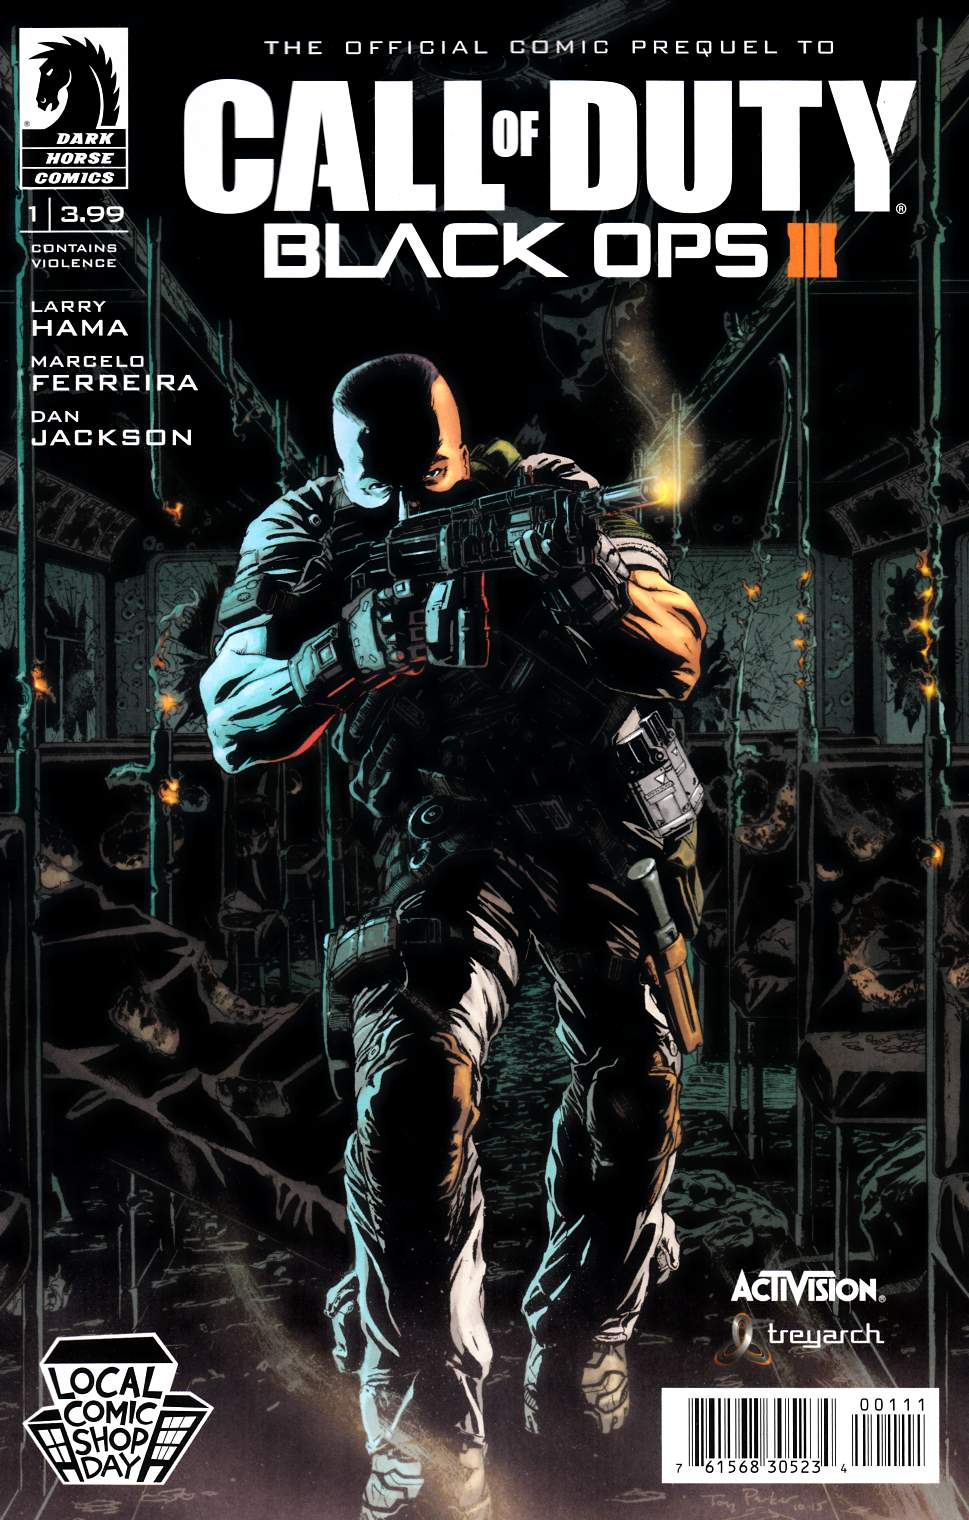 Call of Duty Black Ops III #1 LCSD 2015 Edition [Dark Horse Comic] THUMBNAIL